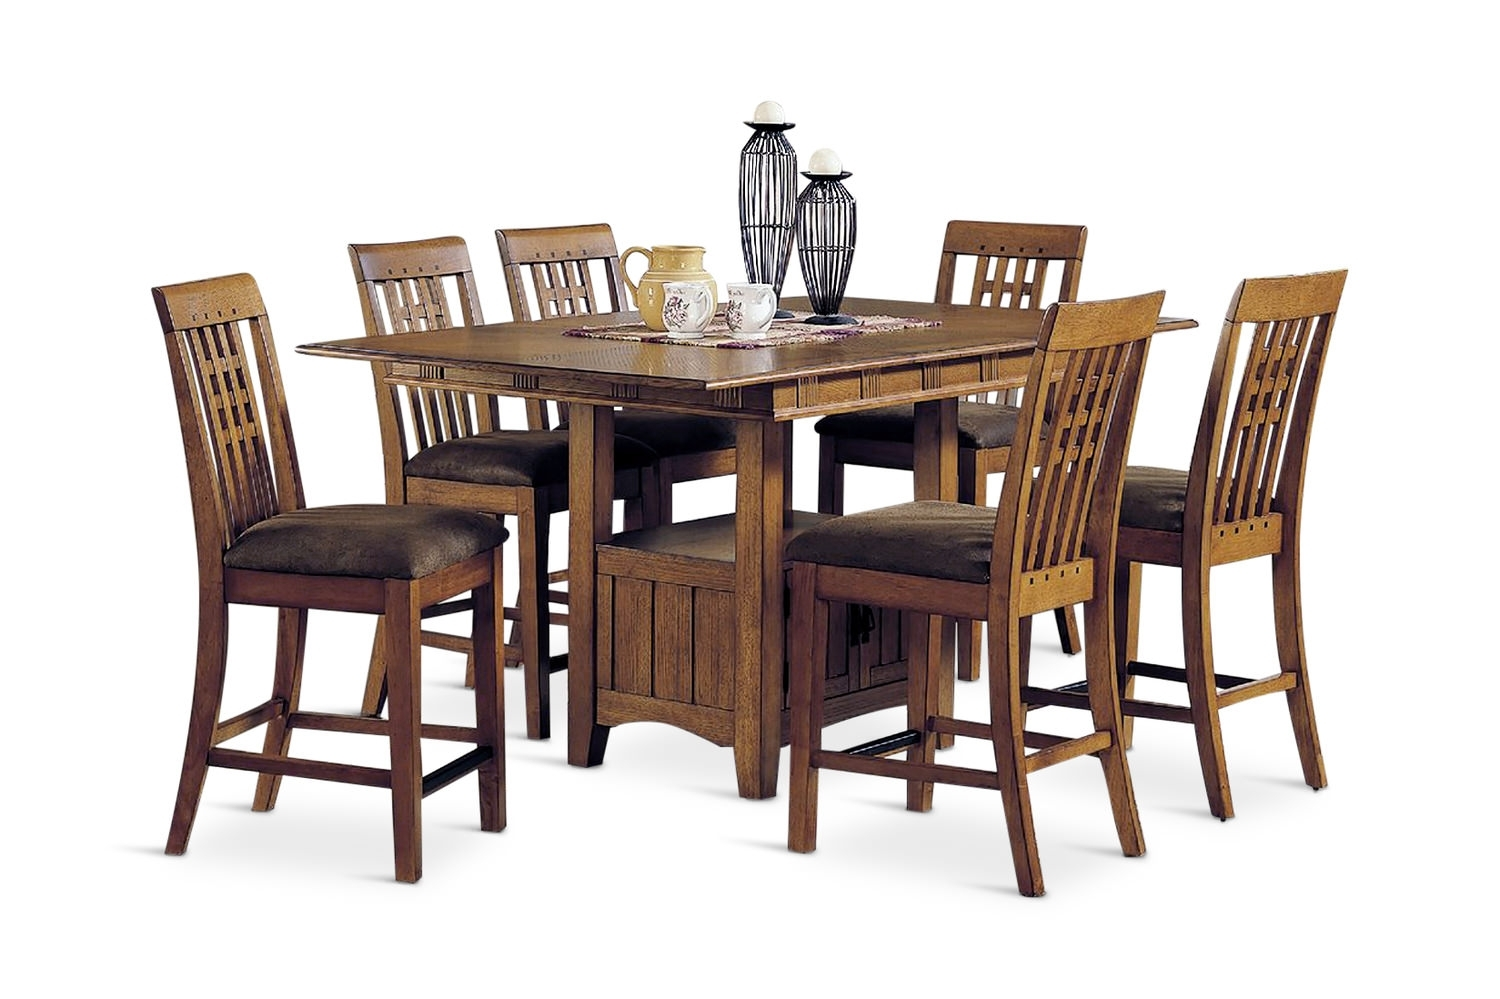 Dining Sets – Kitchen & Dining Room Sets – Hom Furniture Throughout Best And Newest Craftsman 7 Piece Rectangular Extension Dining Sets With Arm & Uph Side Chairs (Image 7 of 20)